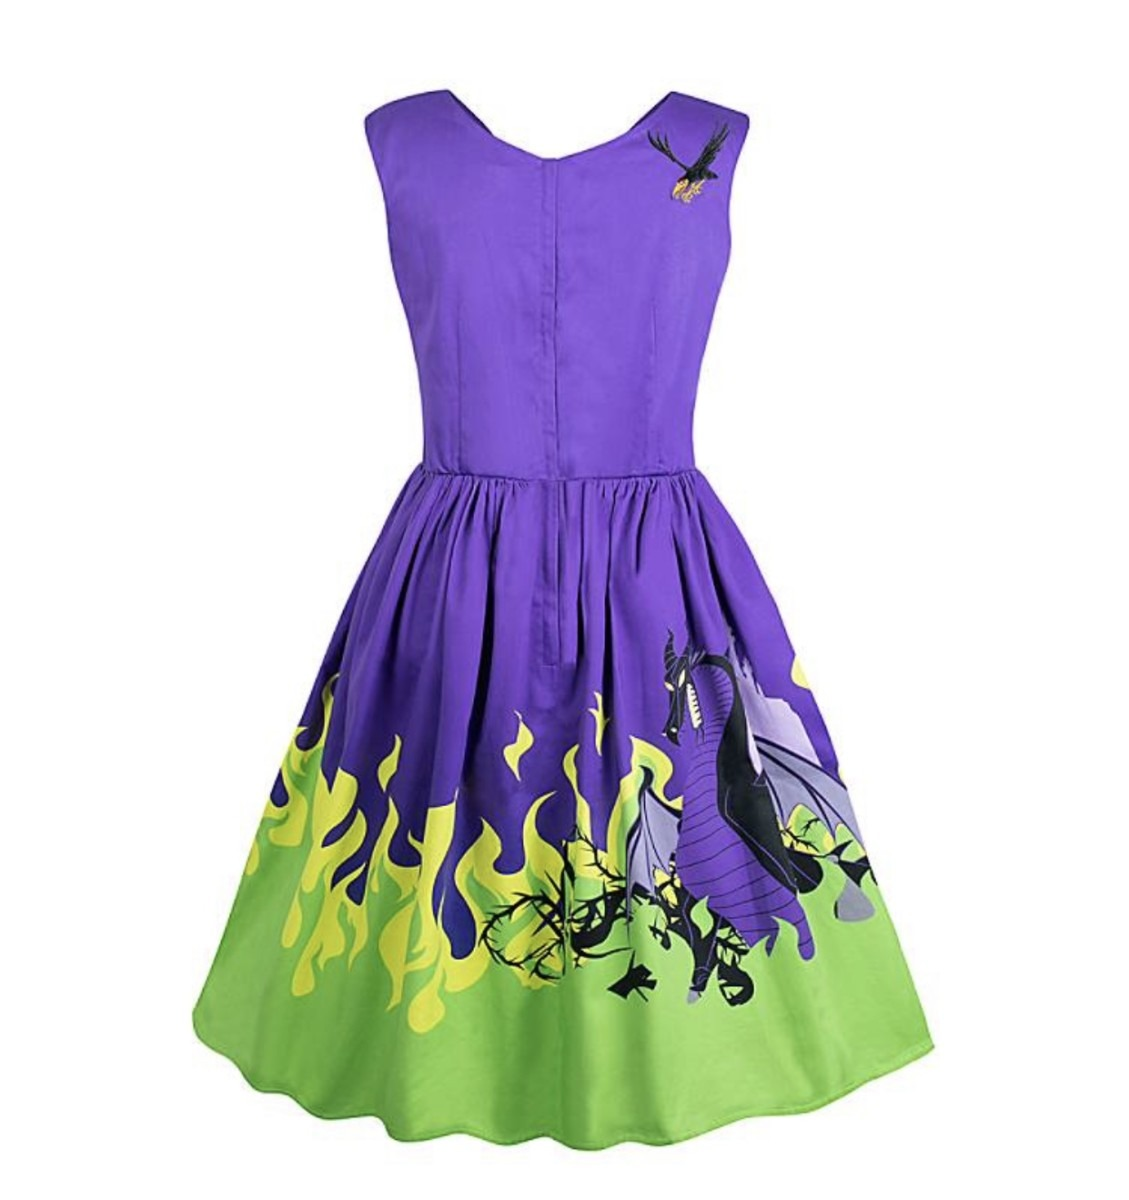 Well, Well... New Maleficent Dress Now on shopDisney! 2